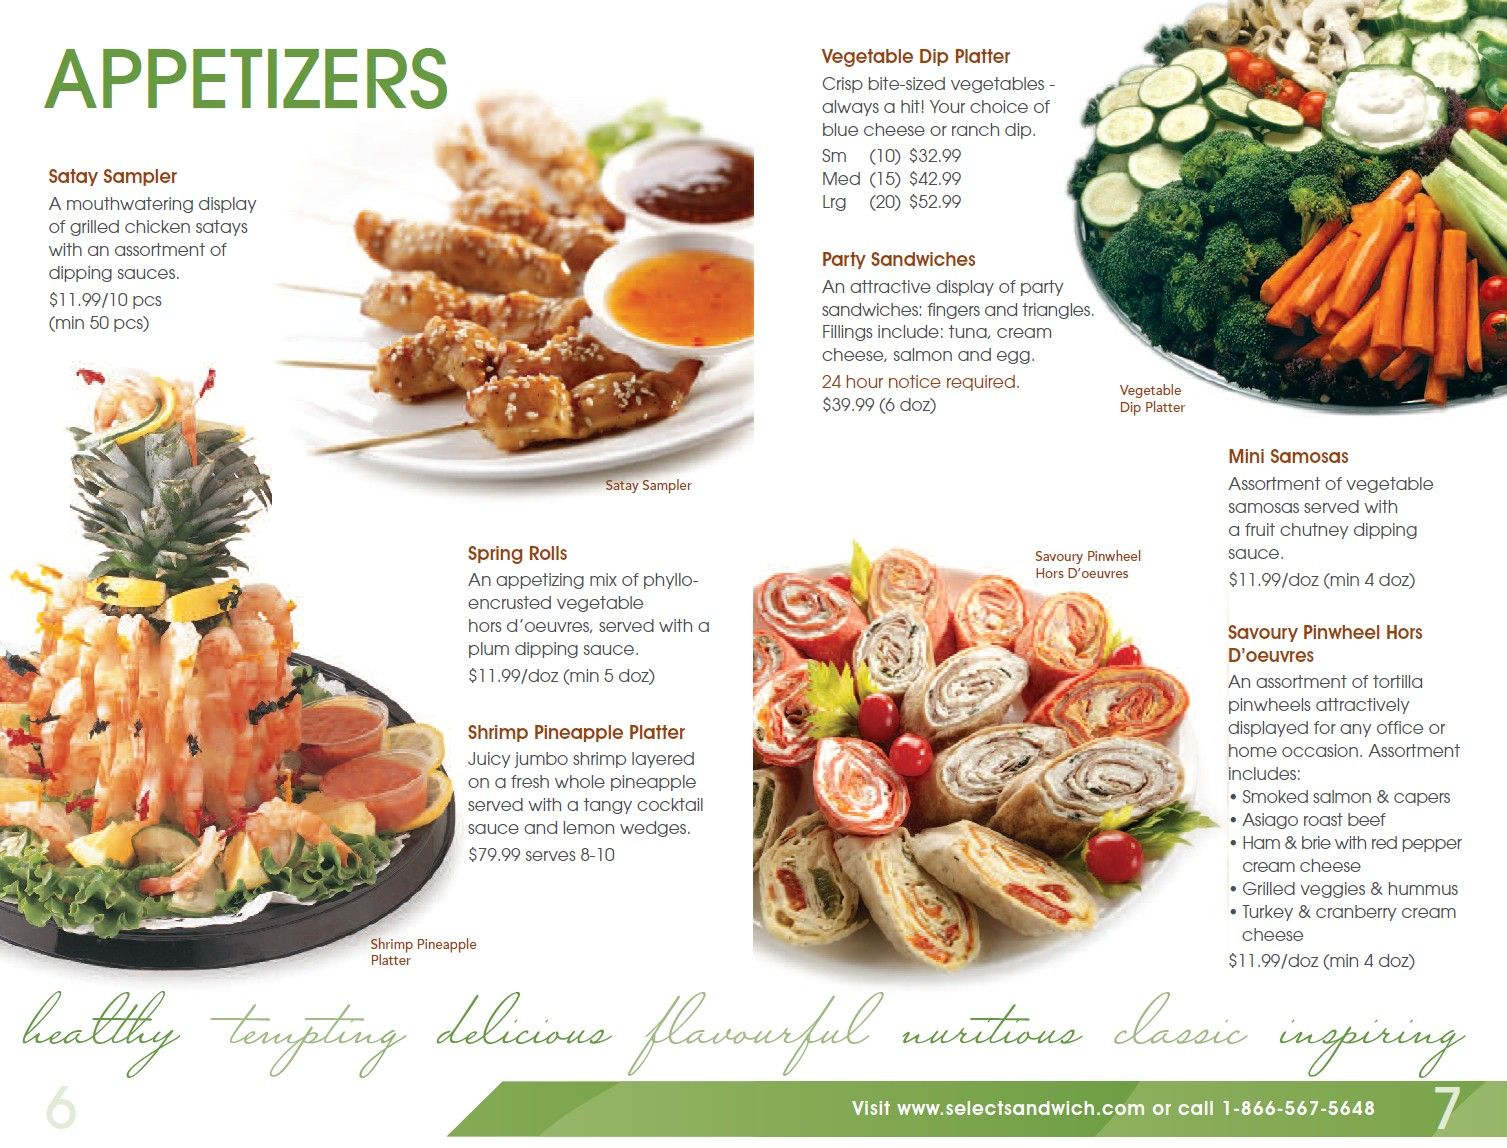 Select Sandwich Catering Menu #4 | Food Collection | Pinterest ...